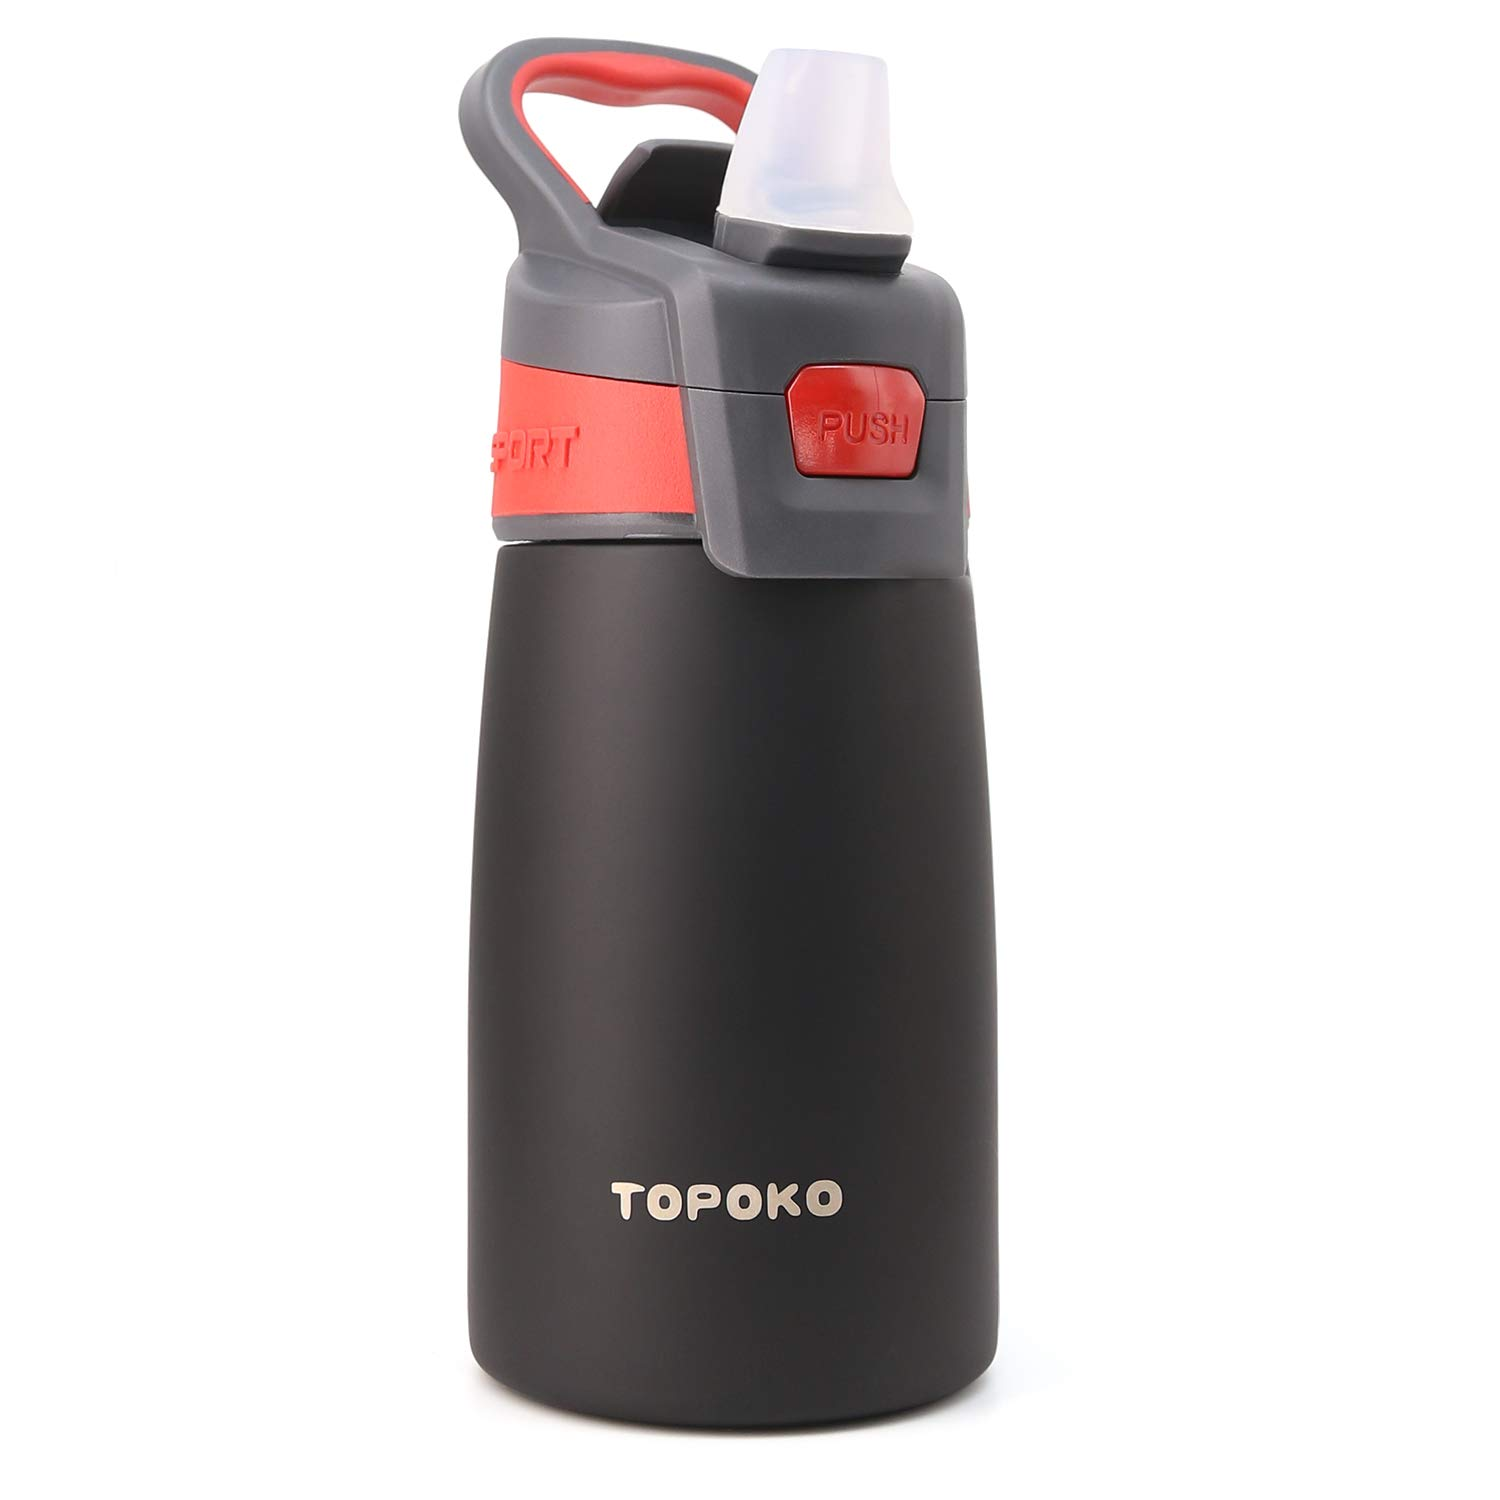 TOPOKO AUTO FLIP 12 OZ Stainless Steel Kids Water Bottle for Girls Double  Wall Beverage Carry Kid Cup Vacuum Insulated Leak Proof Thermos Handle  Spout